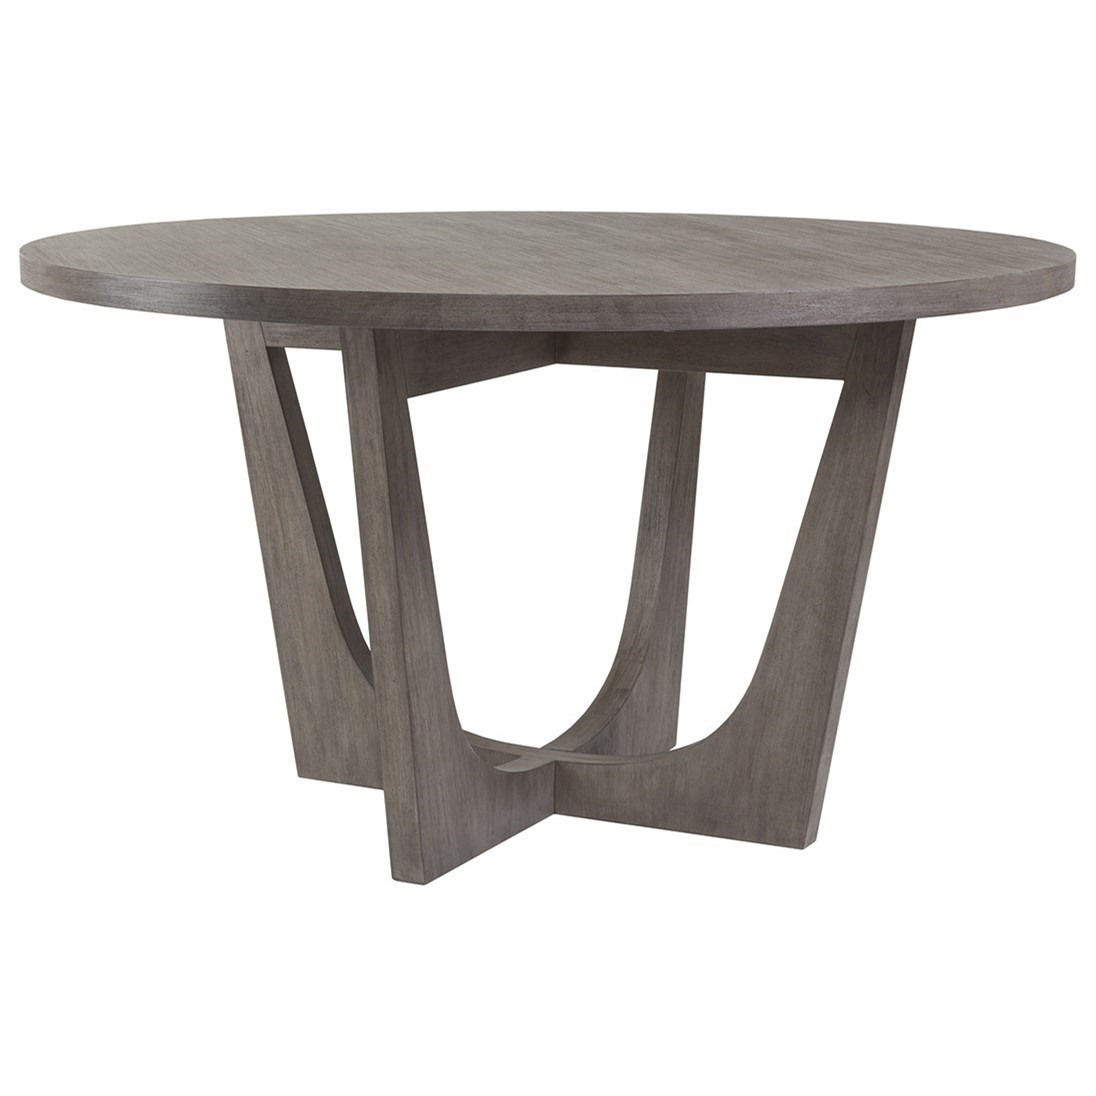 Cohesion Brio Round Dining Table by Artistica at C. S. Wo & Sons Hawaii